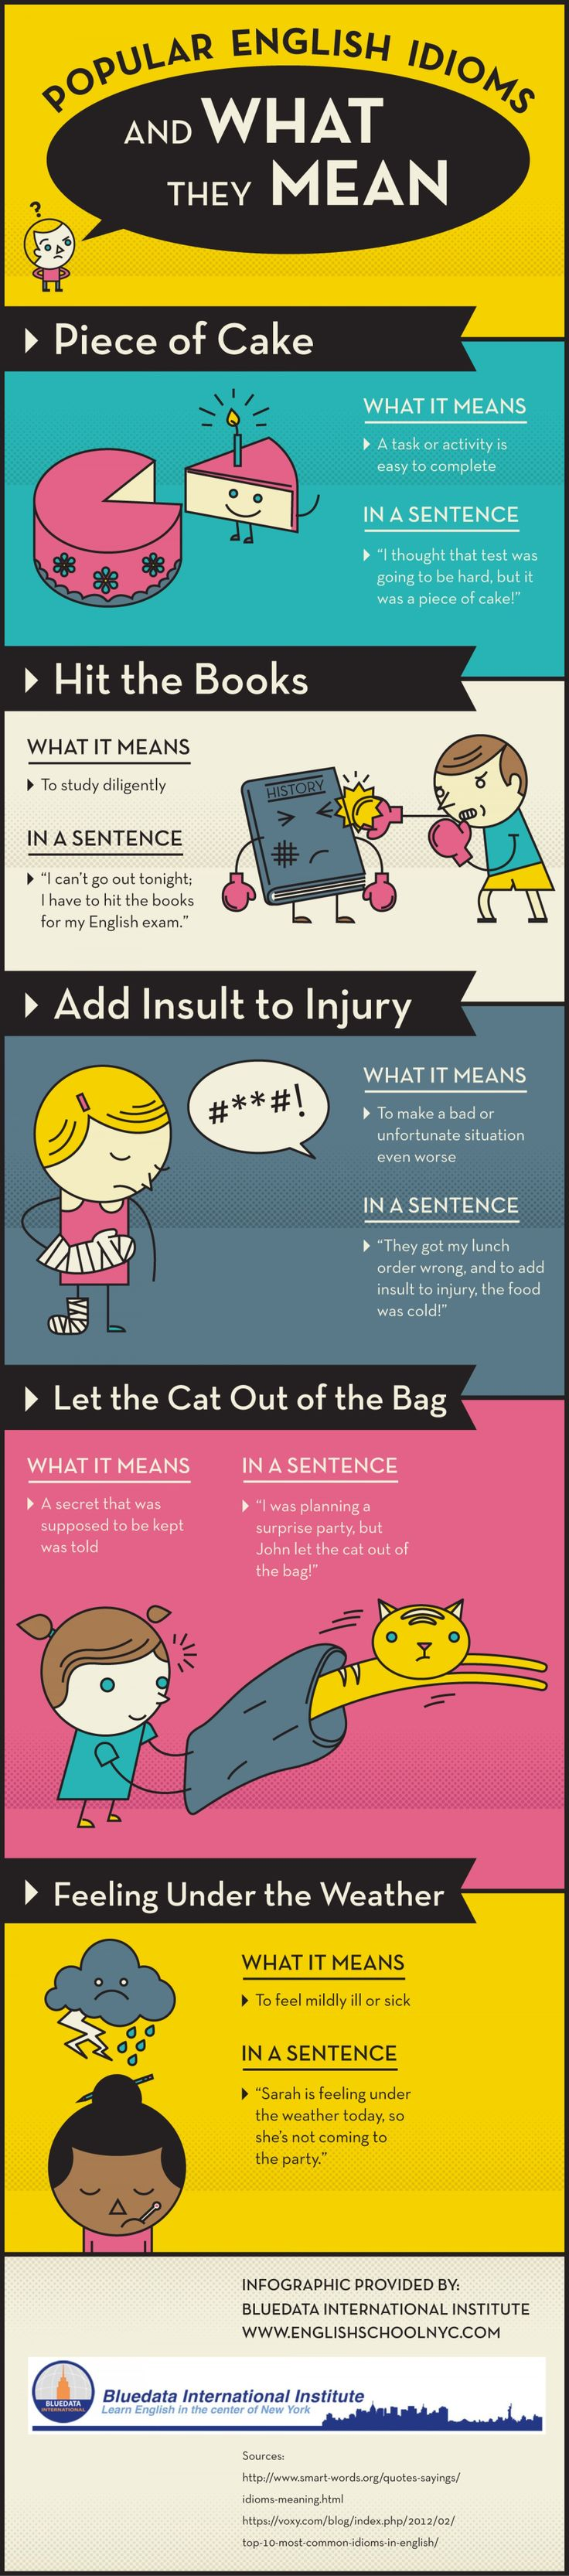 Popular English Idioms and What They Mean Infographic